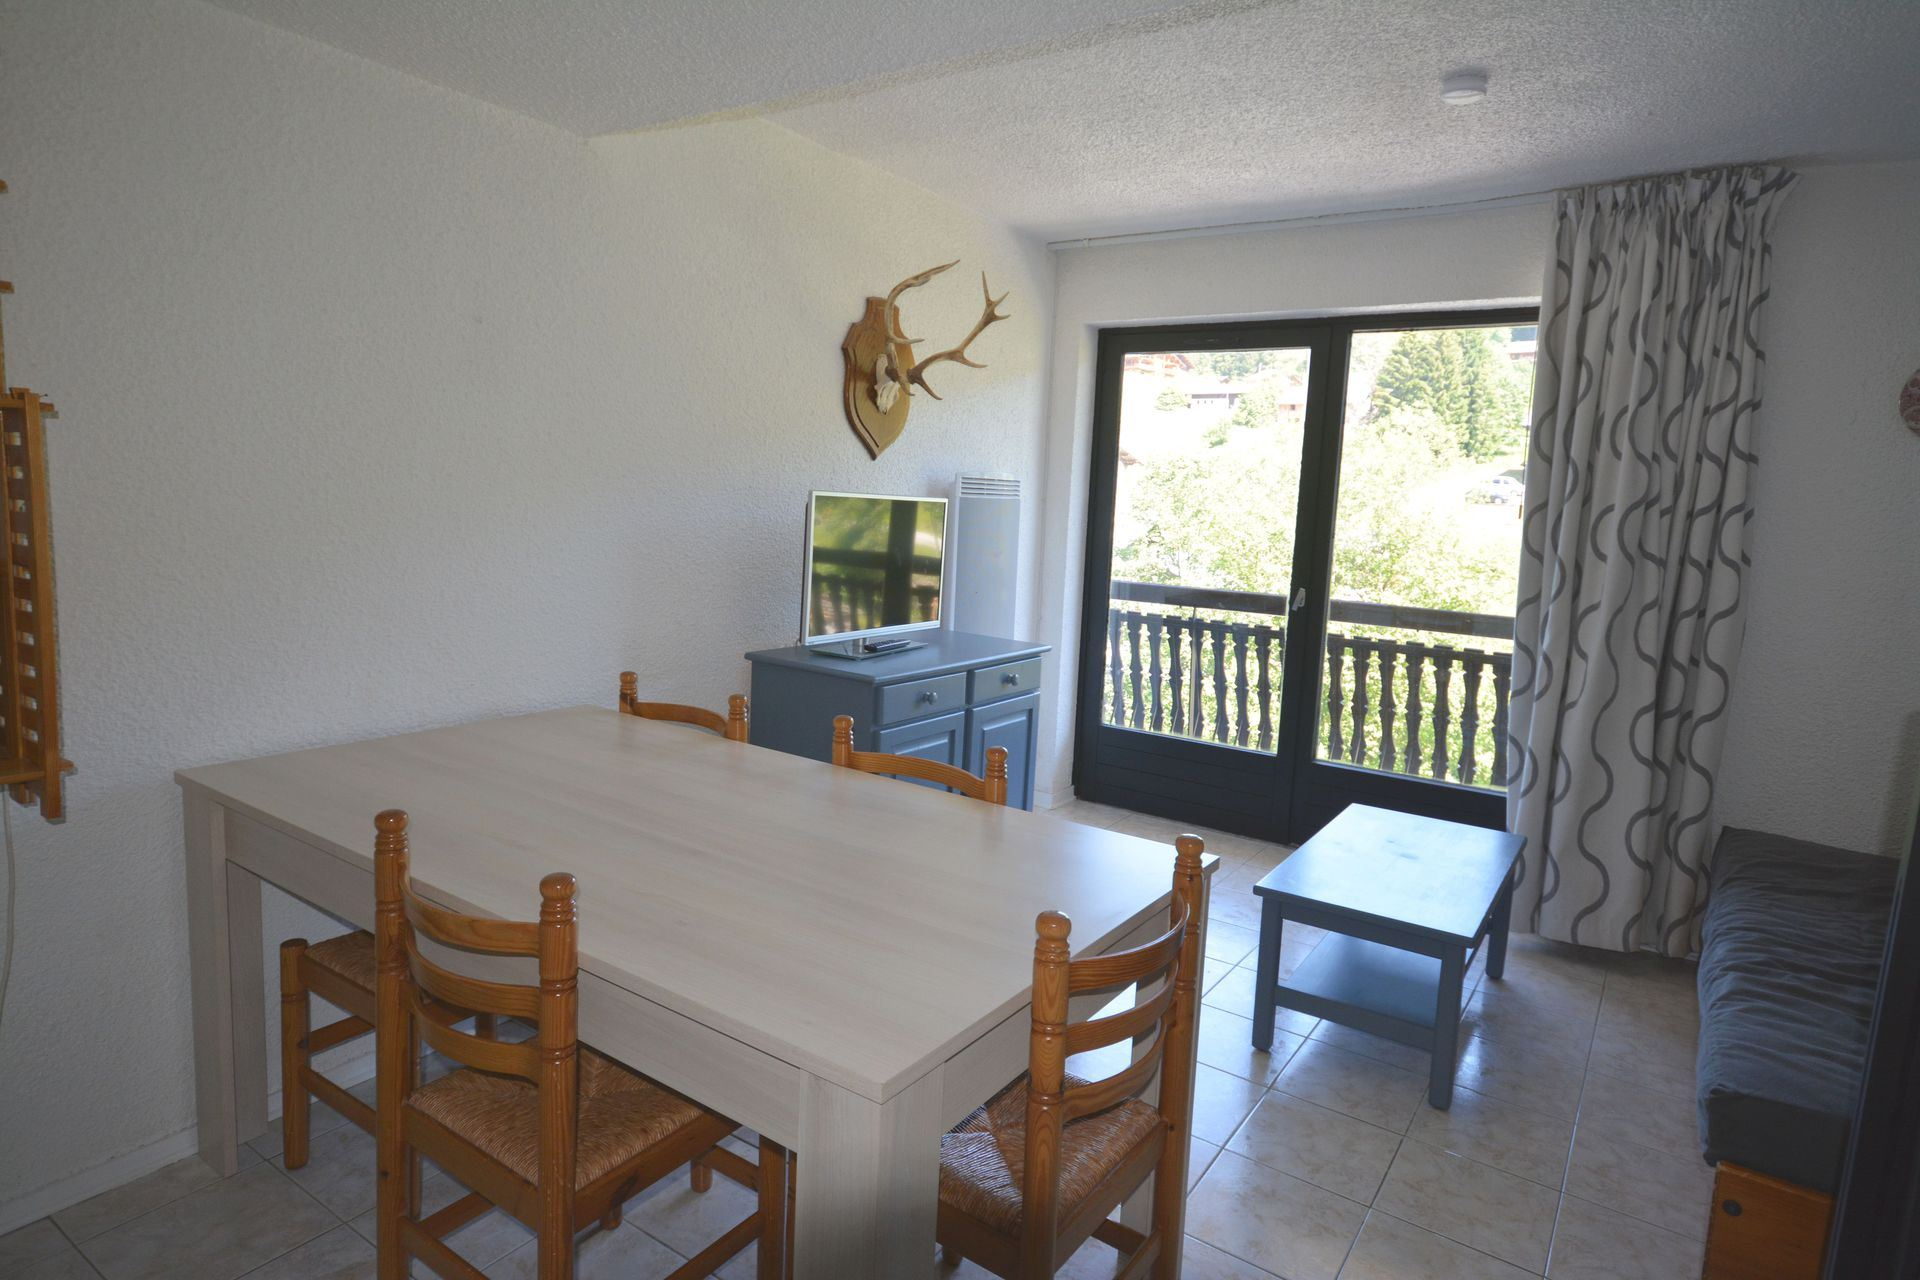 Grizzly - AO 2208 - 2 rooms duplex ** - 4 people - 30m²